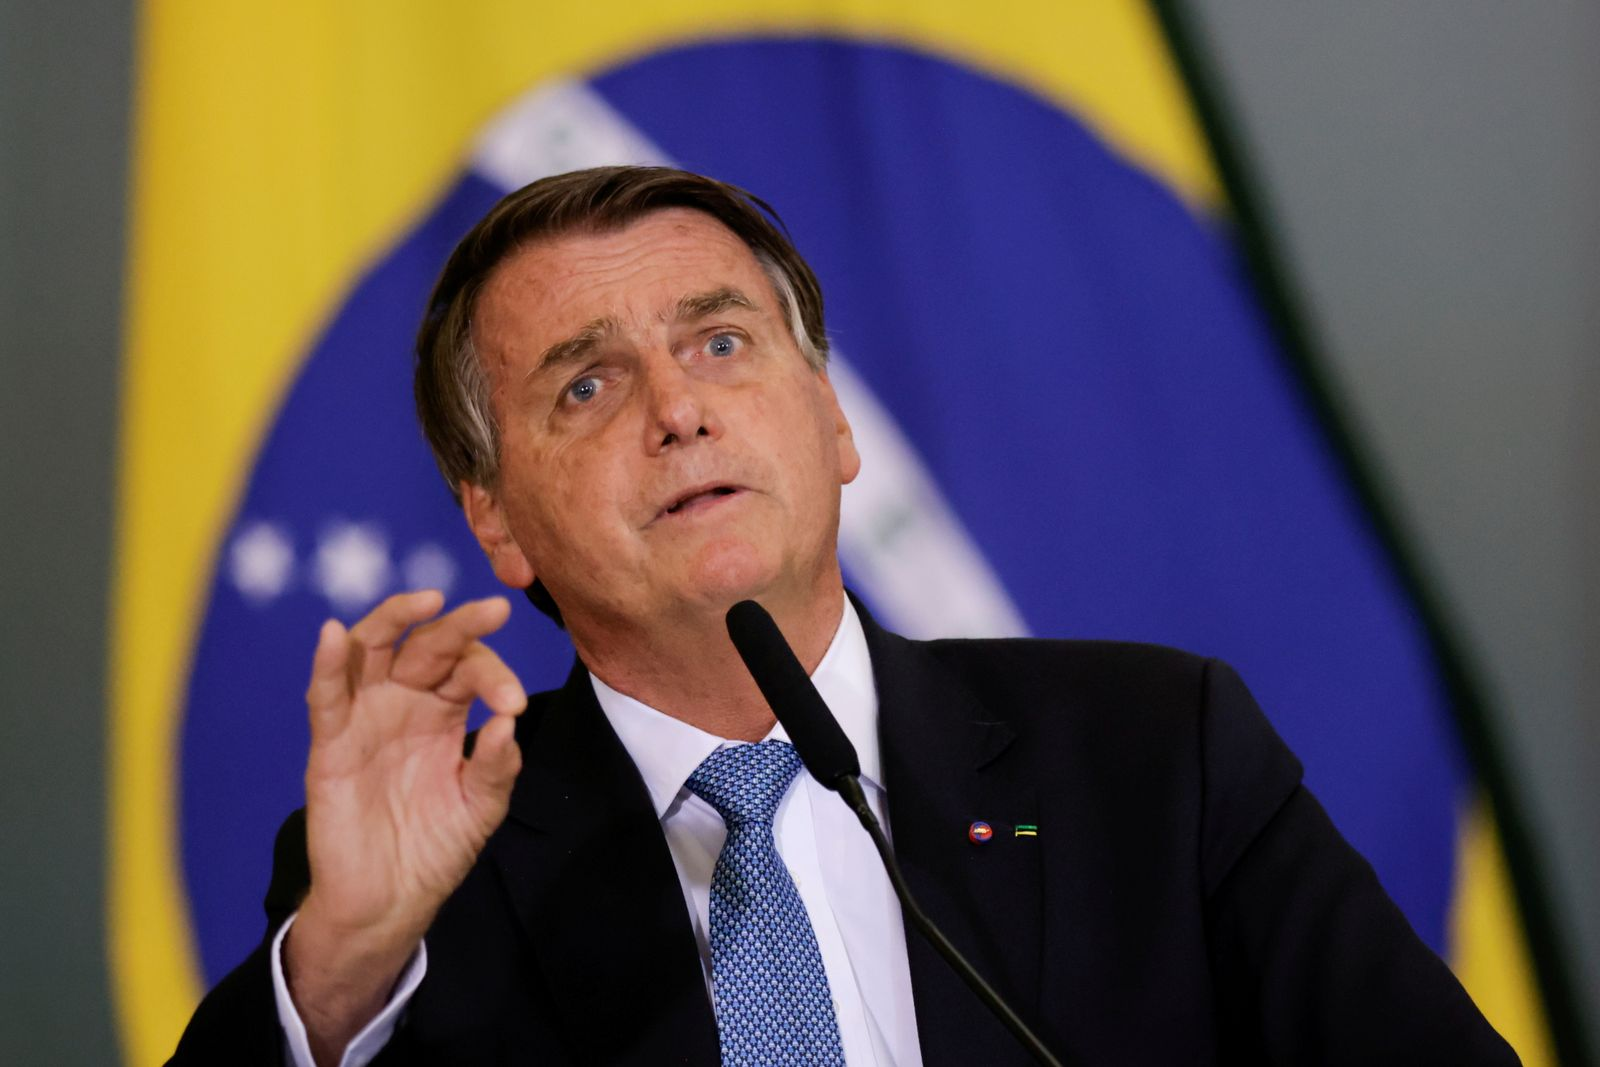 FILE PHOTO: Brazil's President Jair Bolsonaro attends the ceremony for the Modernization of Occupational Health and Safety Regulations, in Brasilia